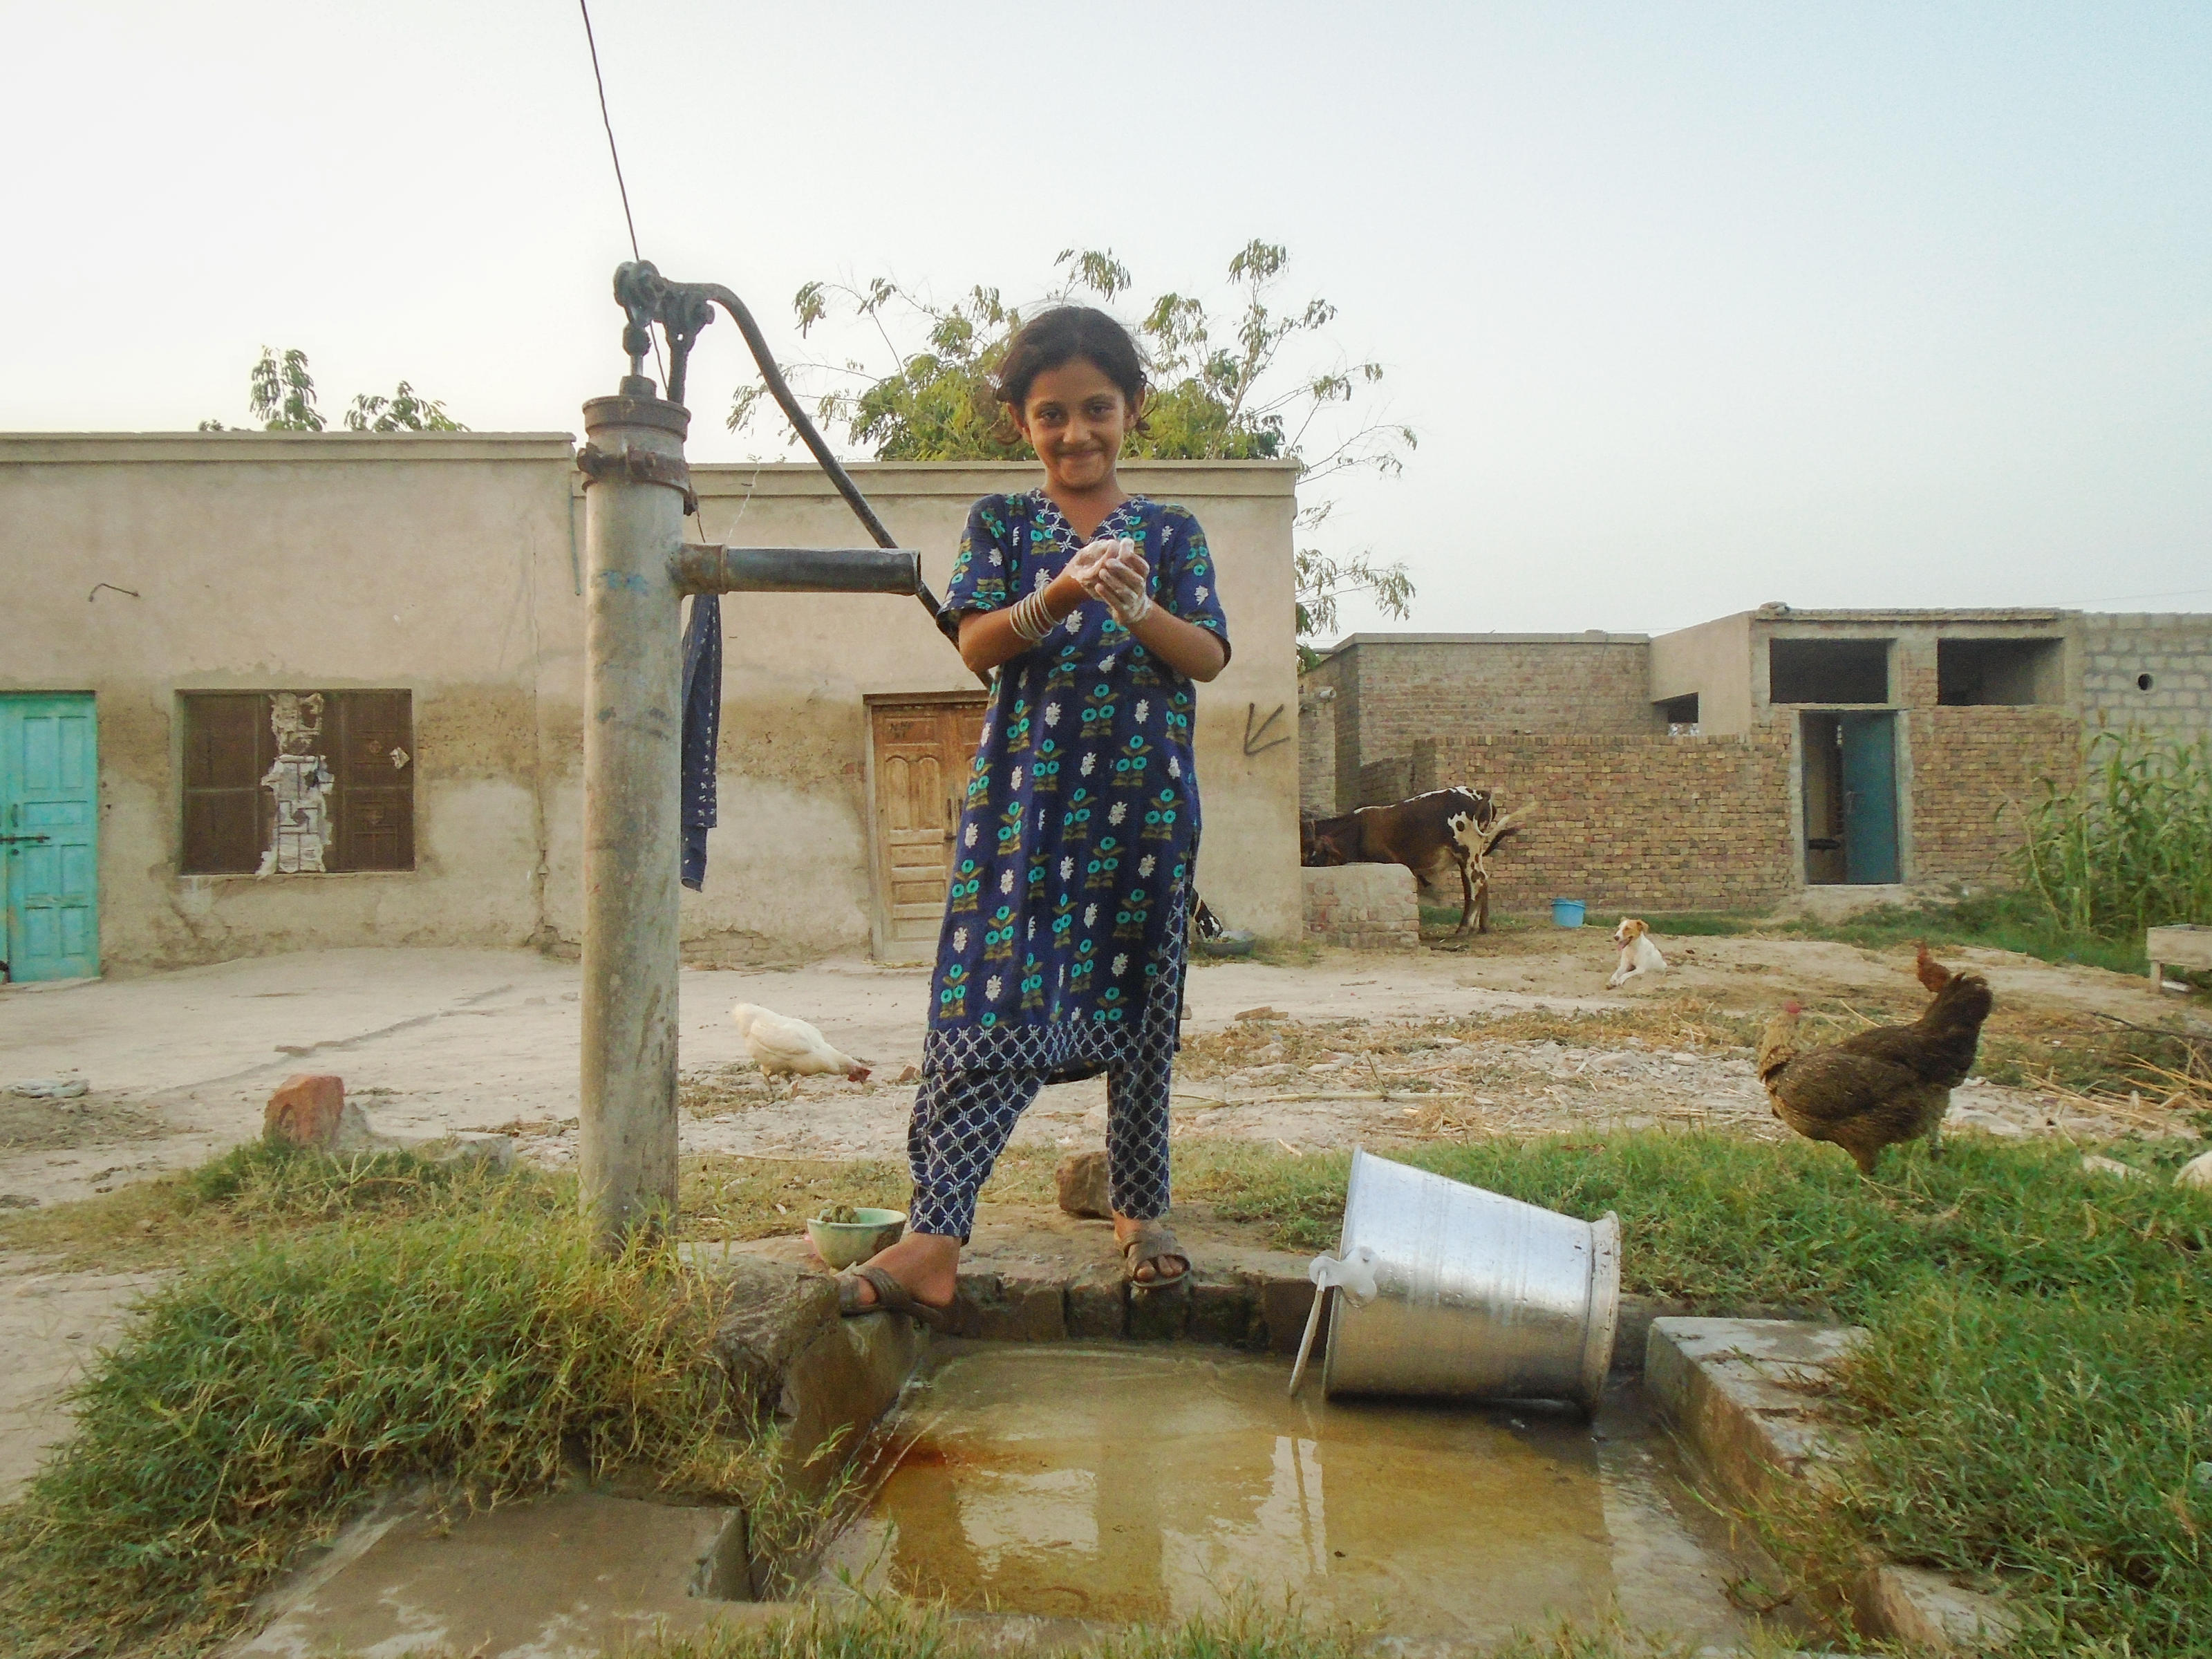 Ishqeen, 7, washing her hands with soap in Pakistan, August 2017.